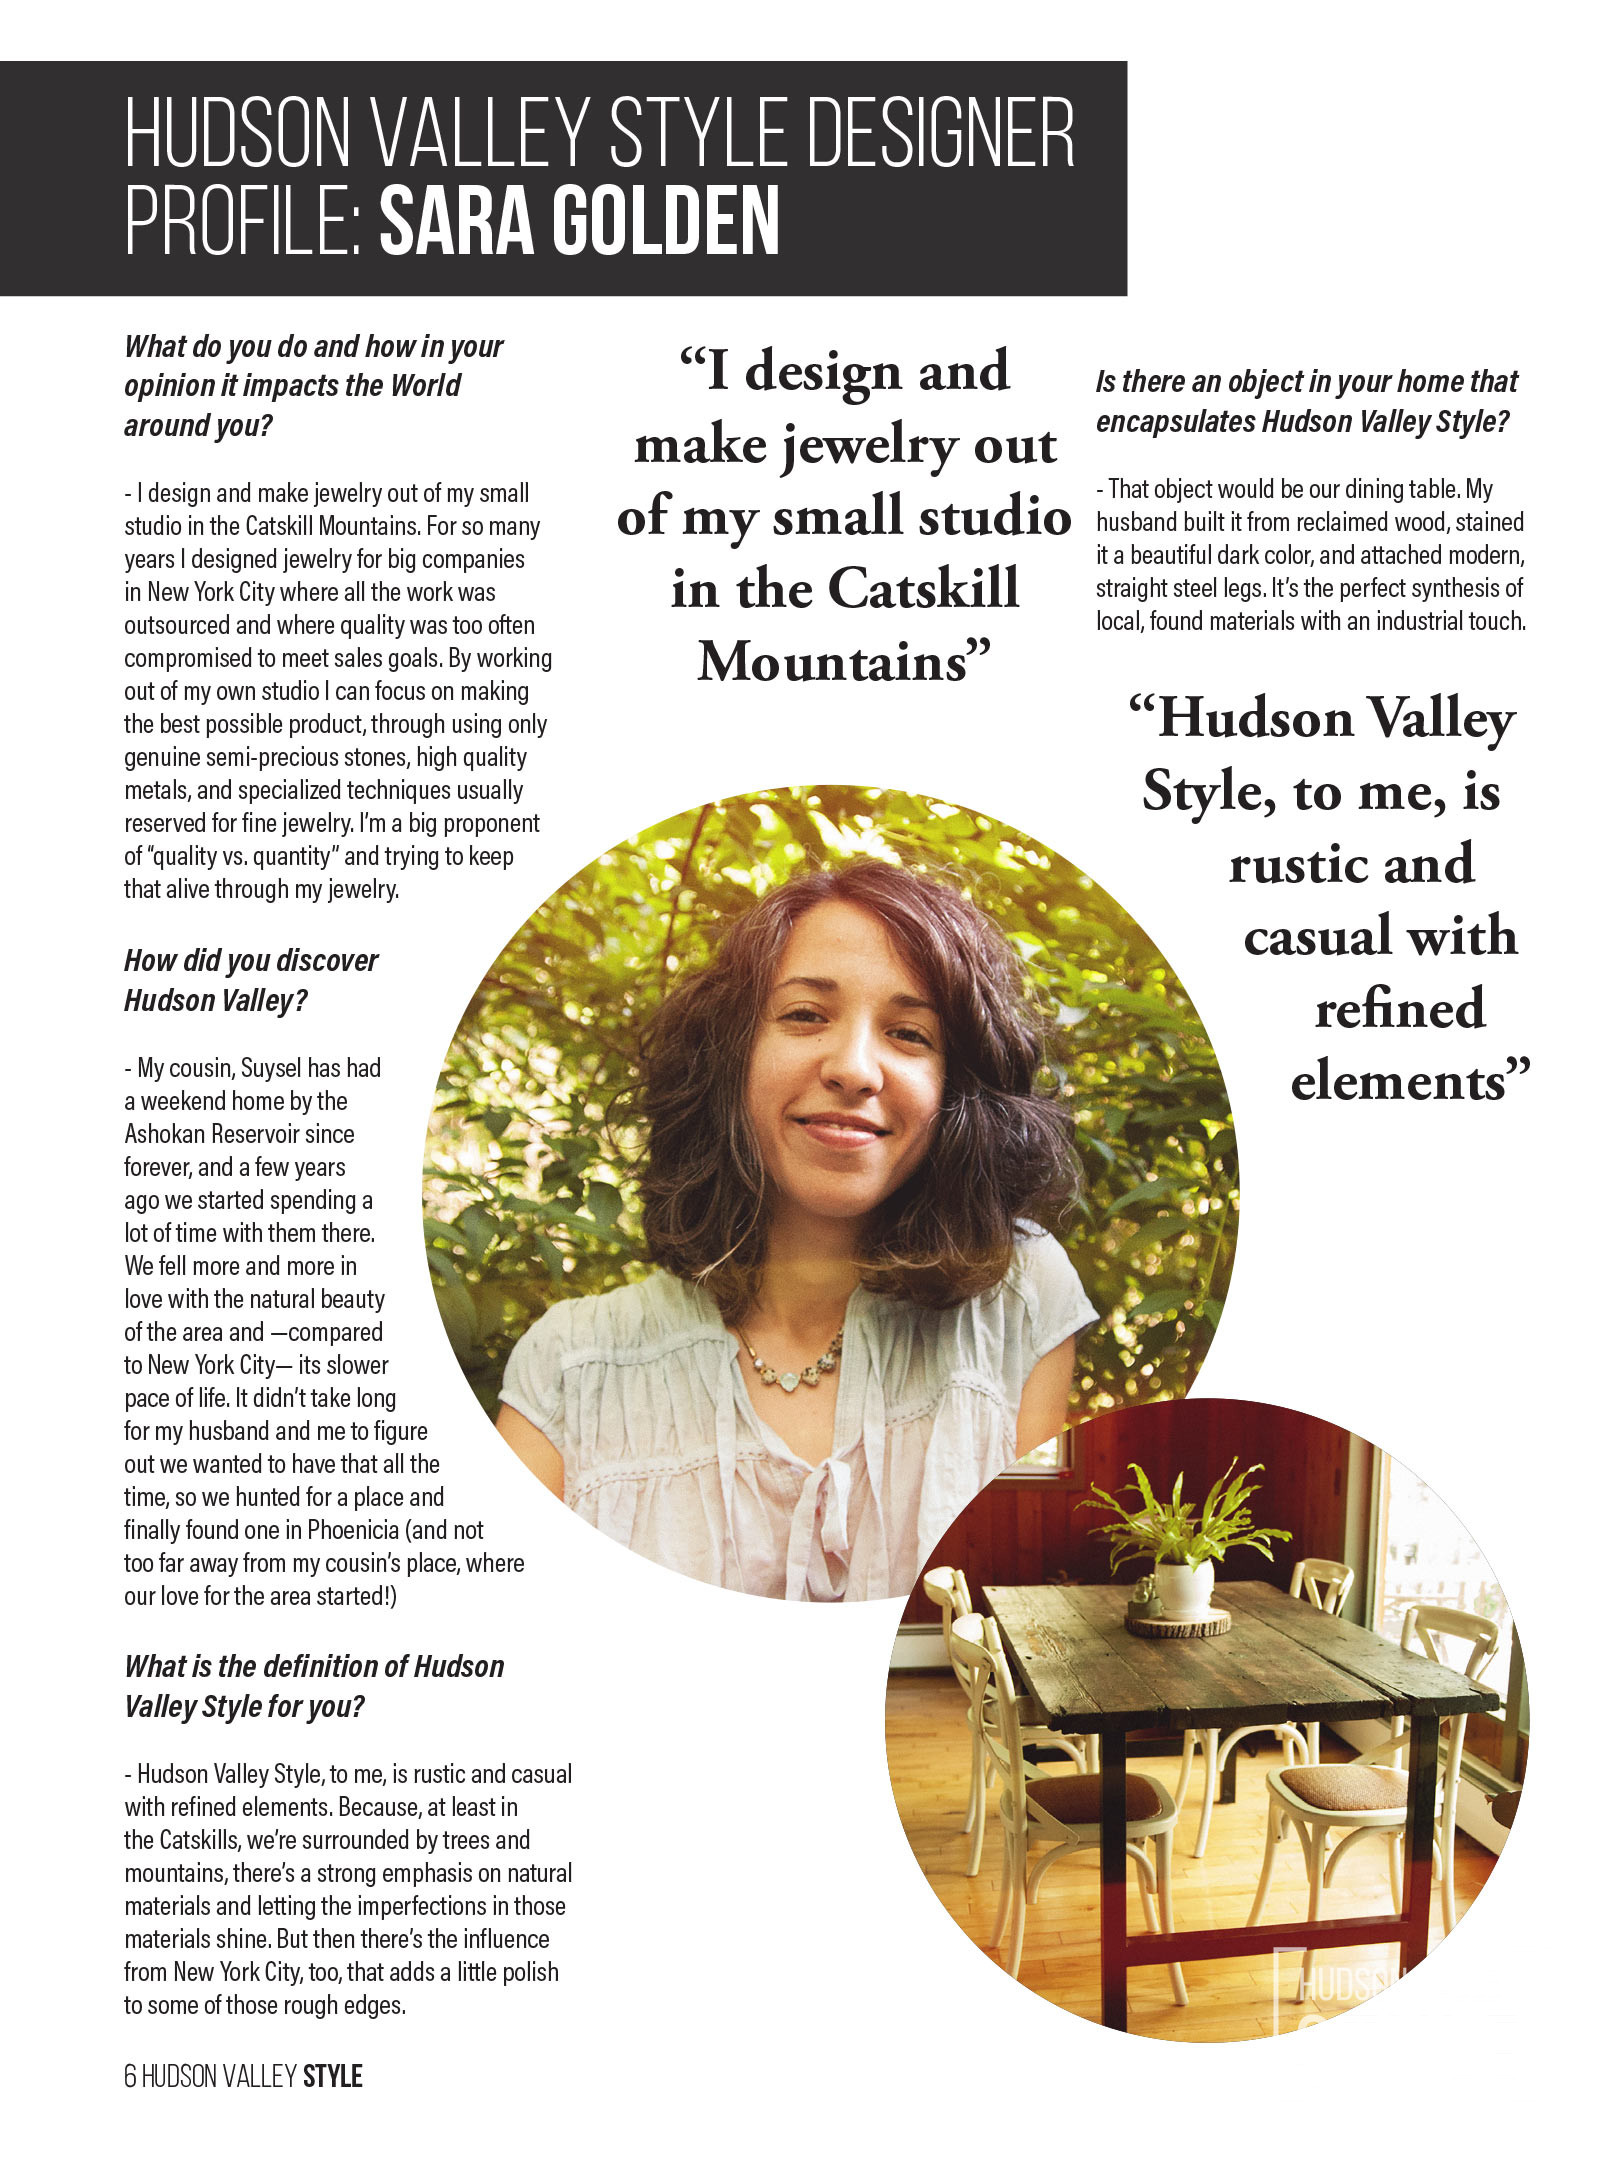 Hudson Valley Style Magazine Designer Profile: Jewelry Designer Sara Golden